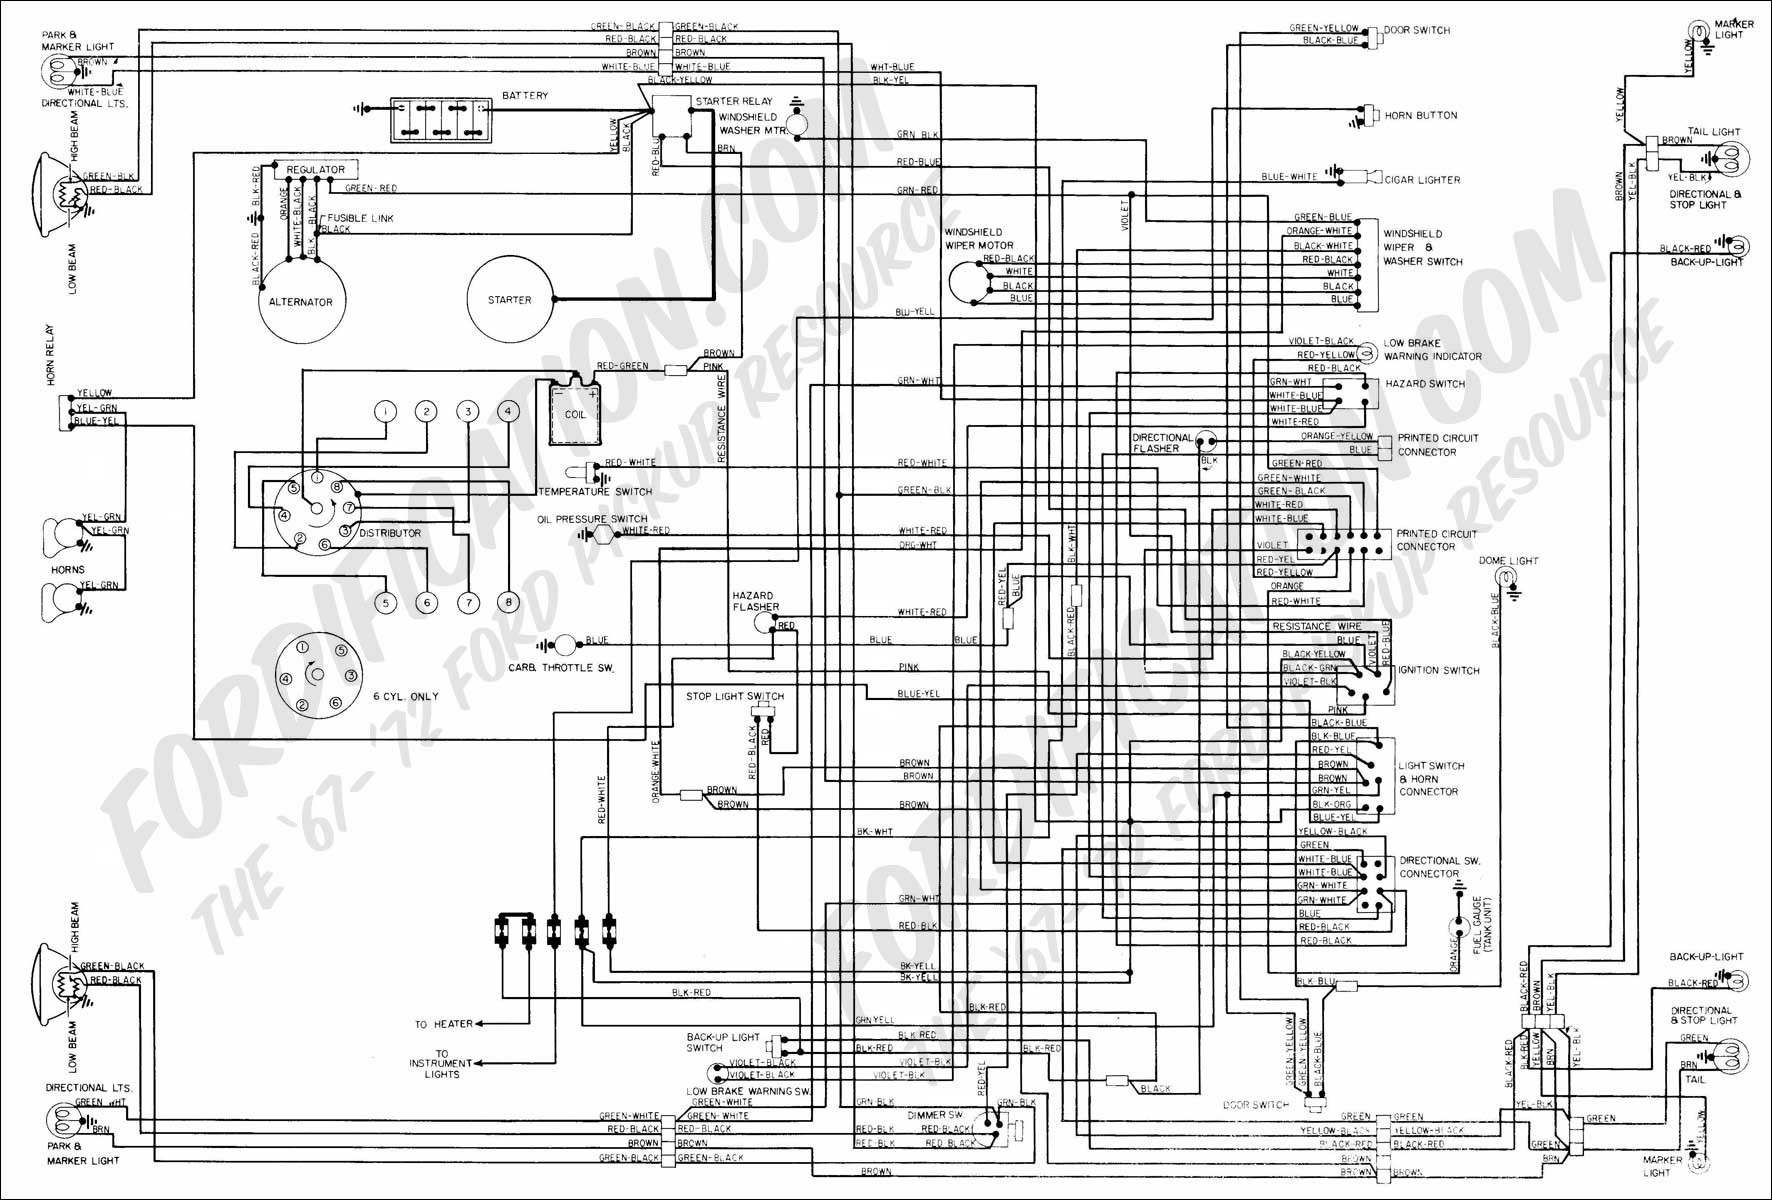 Wiring Diagram F Experts Of 3 Way Switch Block Ford Alternator 1988 F700 Blue Best Site For Light